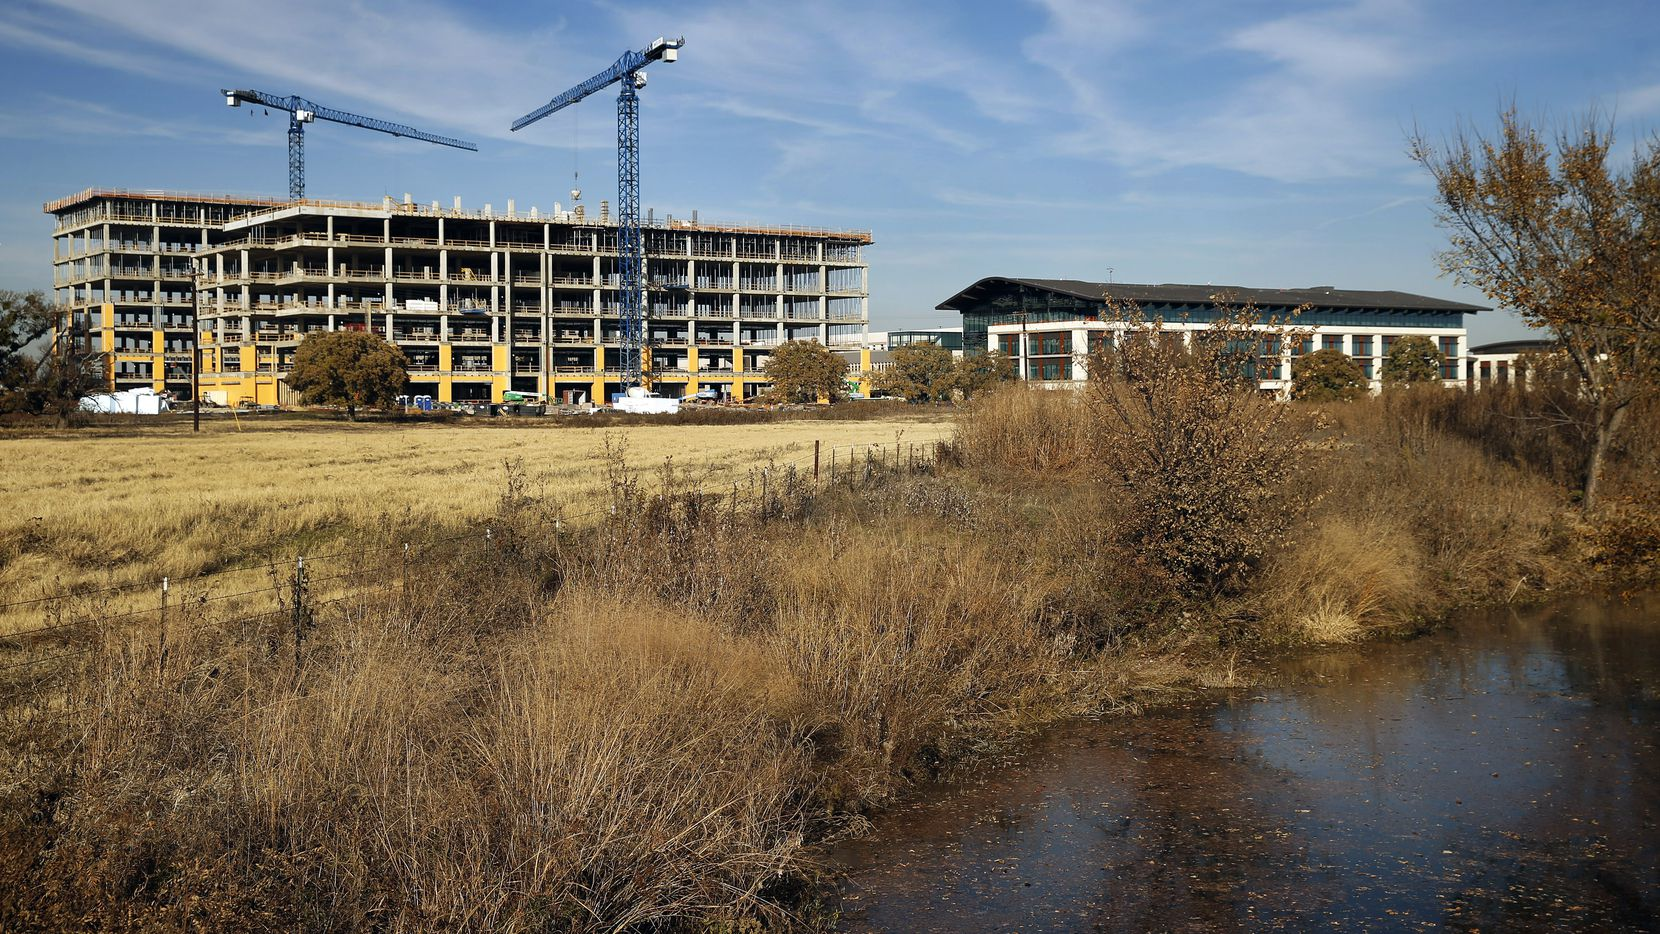 The financial services firm Charles Schwab & Co. is building a new corporate campus in Westlake, Texas, Tuesday, November 19, 2019. The 70-acre site at state highways 114 and 170.